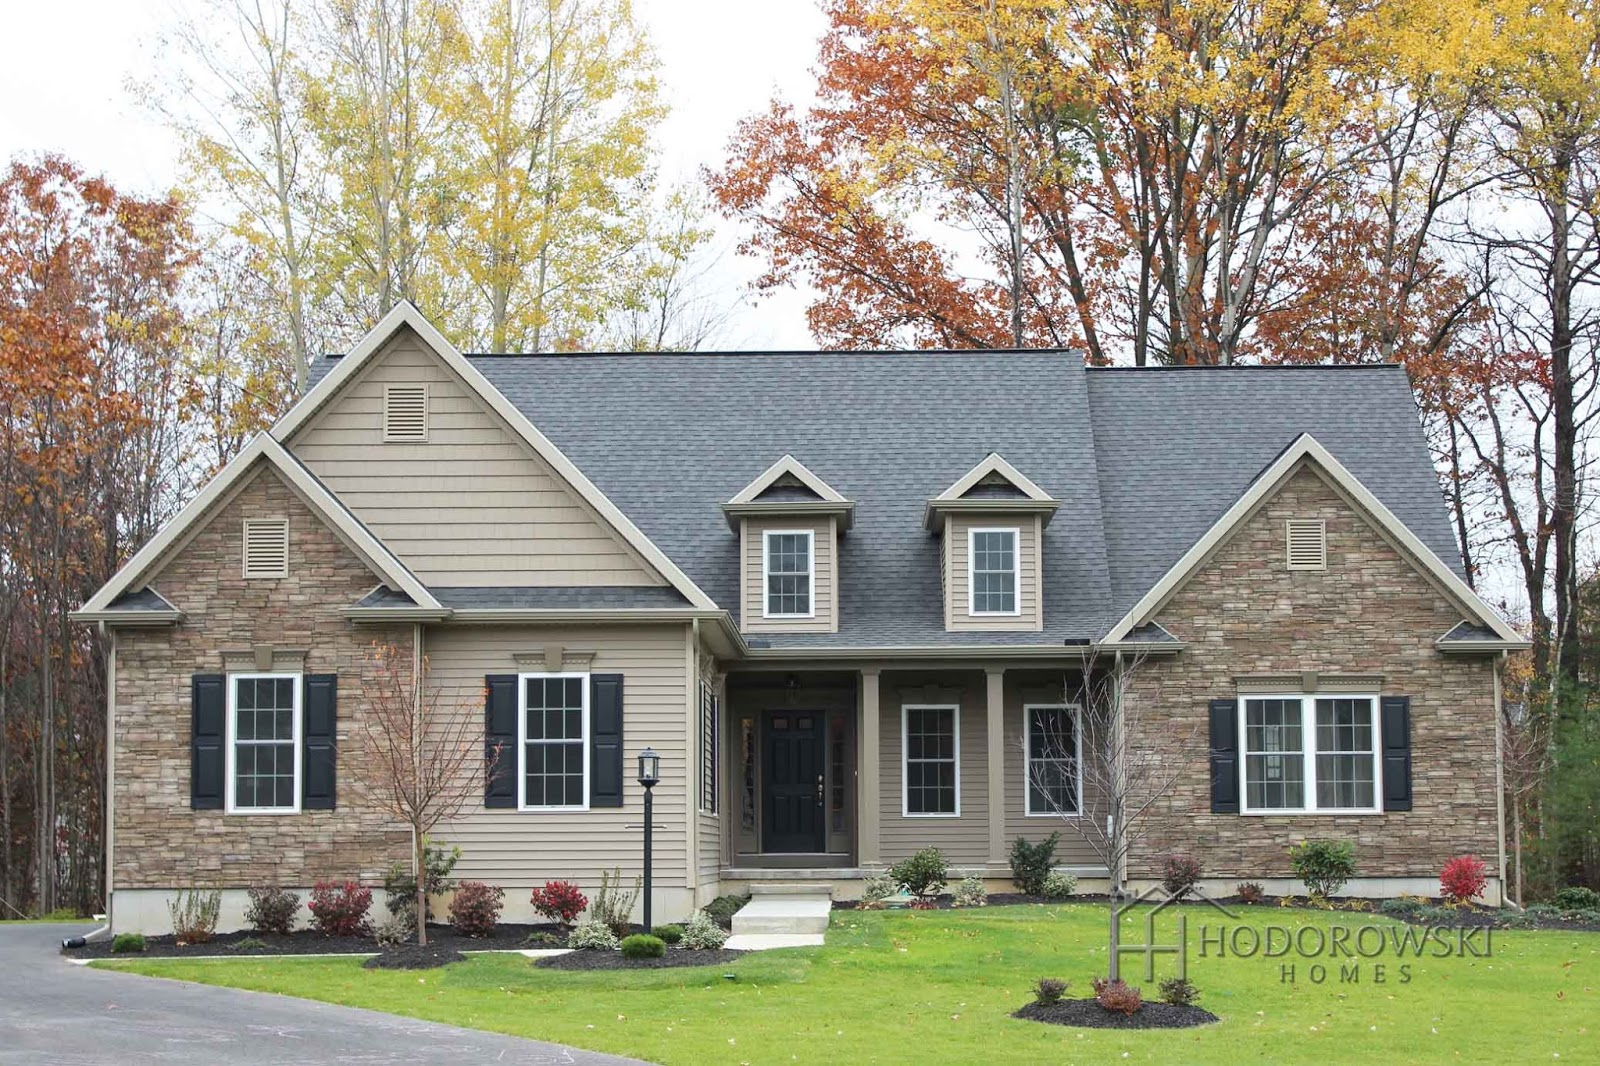 Hodorowski Homes Prepping Your Home For Summer Vacation